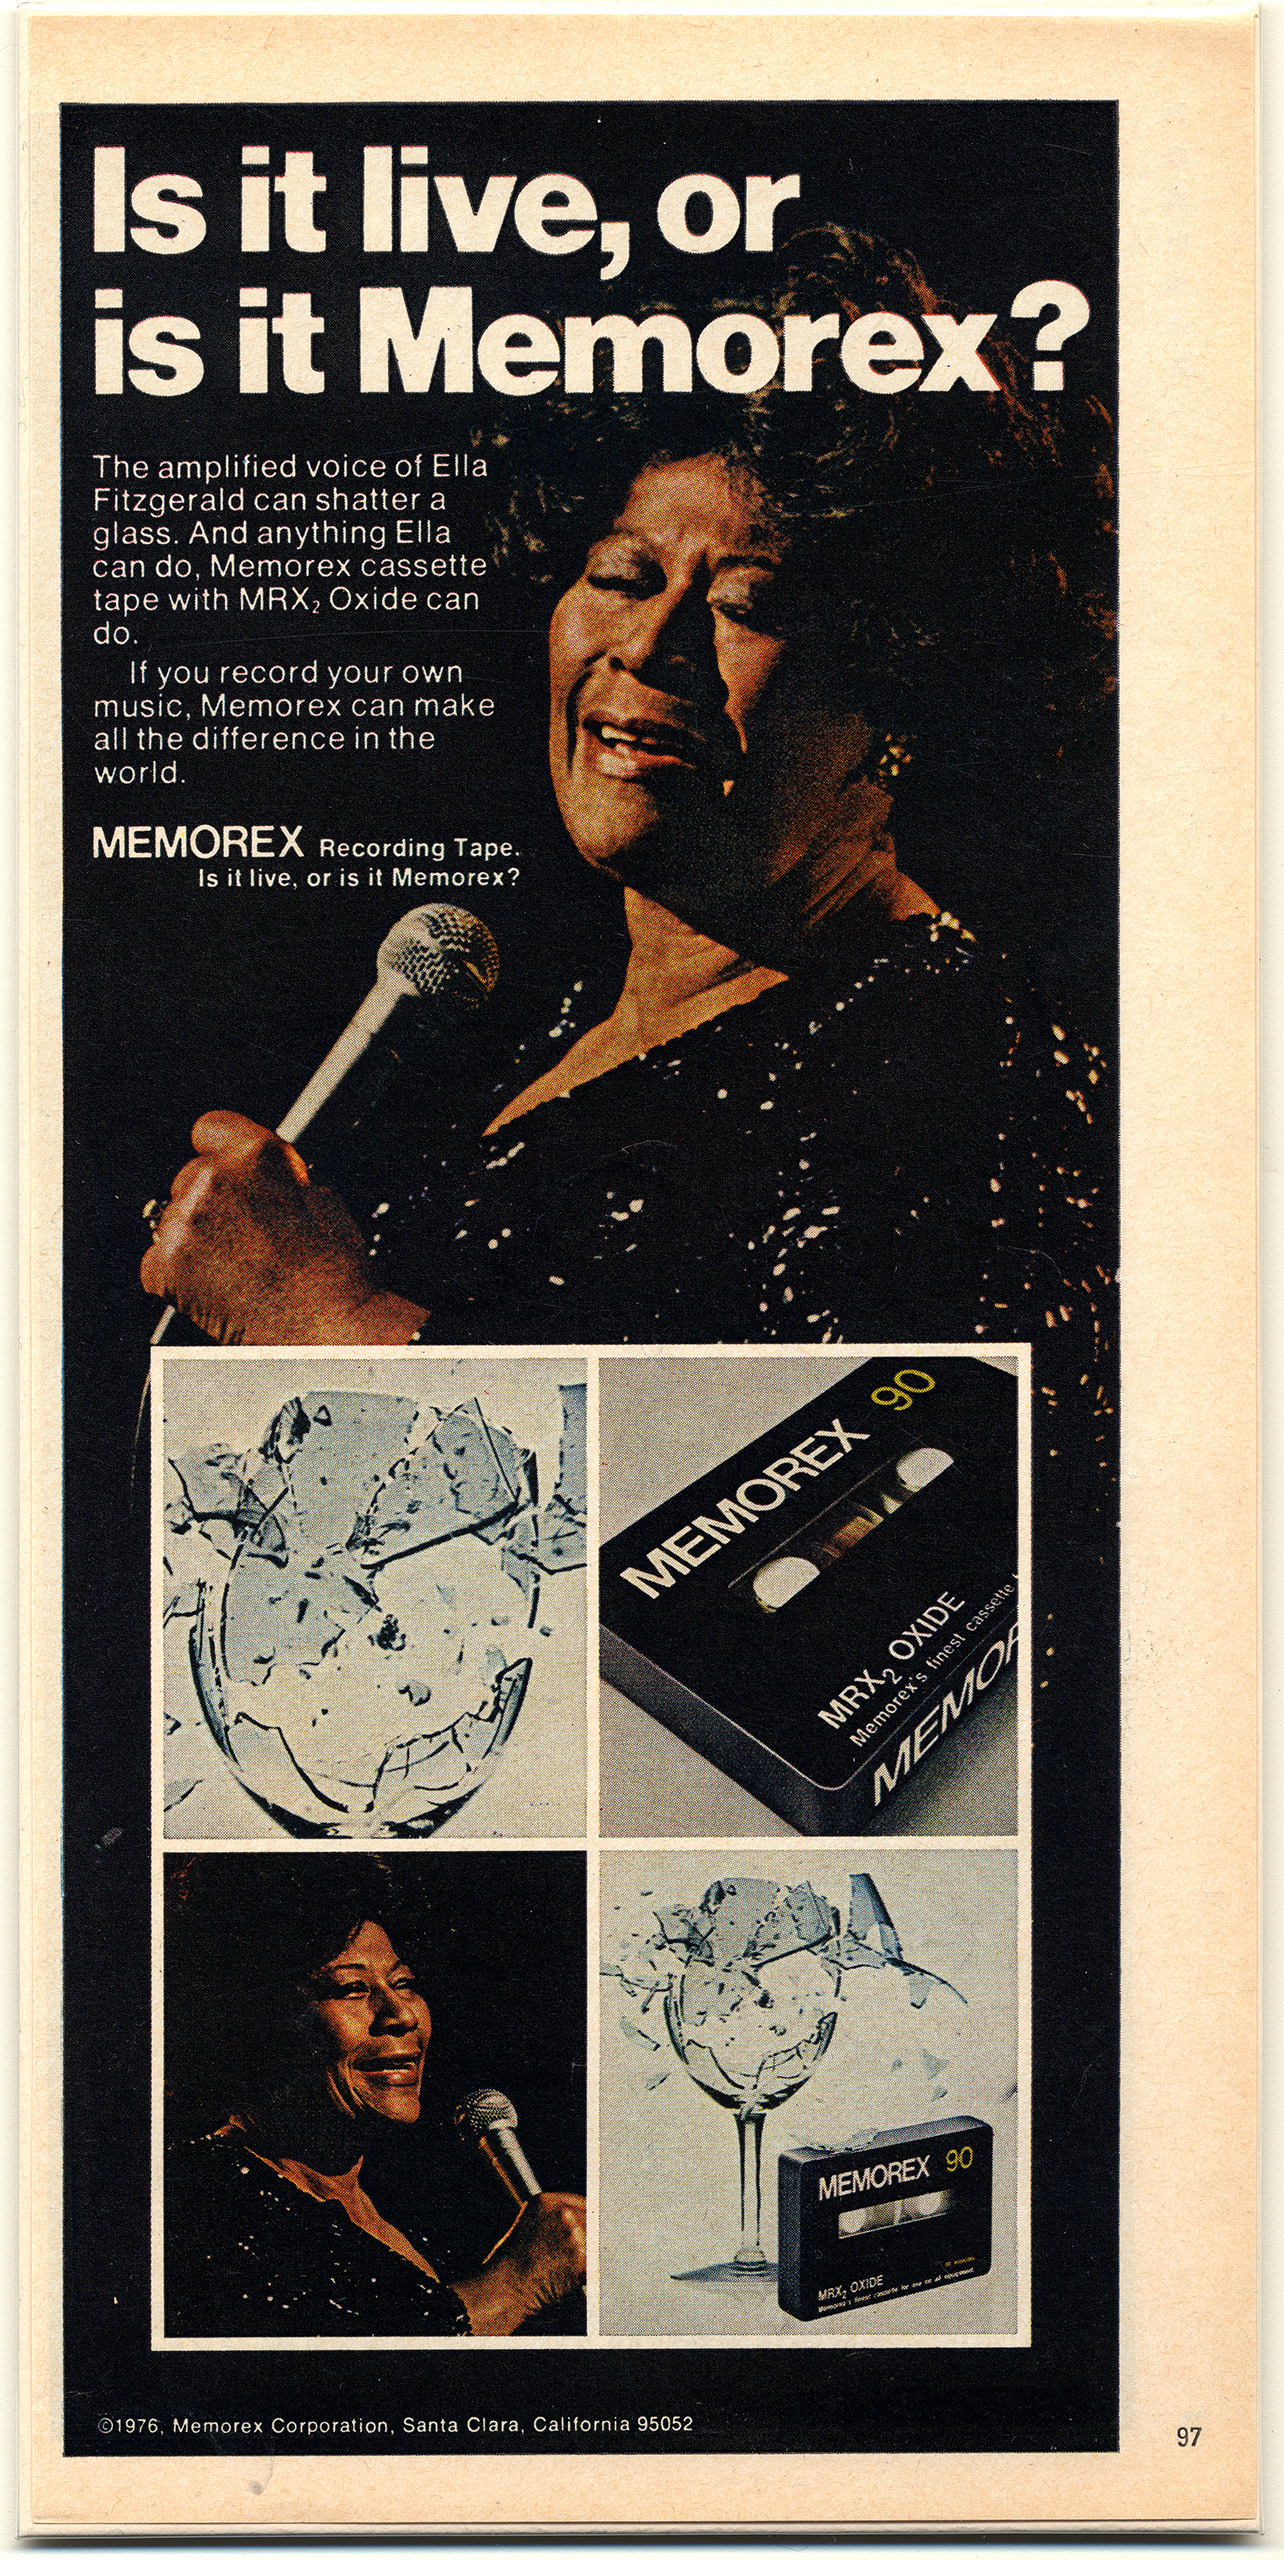 Magazine Advertisements circa 1975-76. In demand as a celebrity, Fitzgerald promoted Memorex recording tape